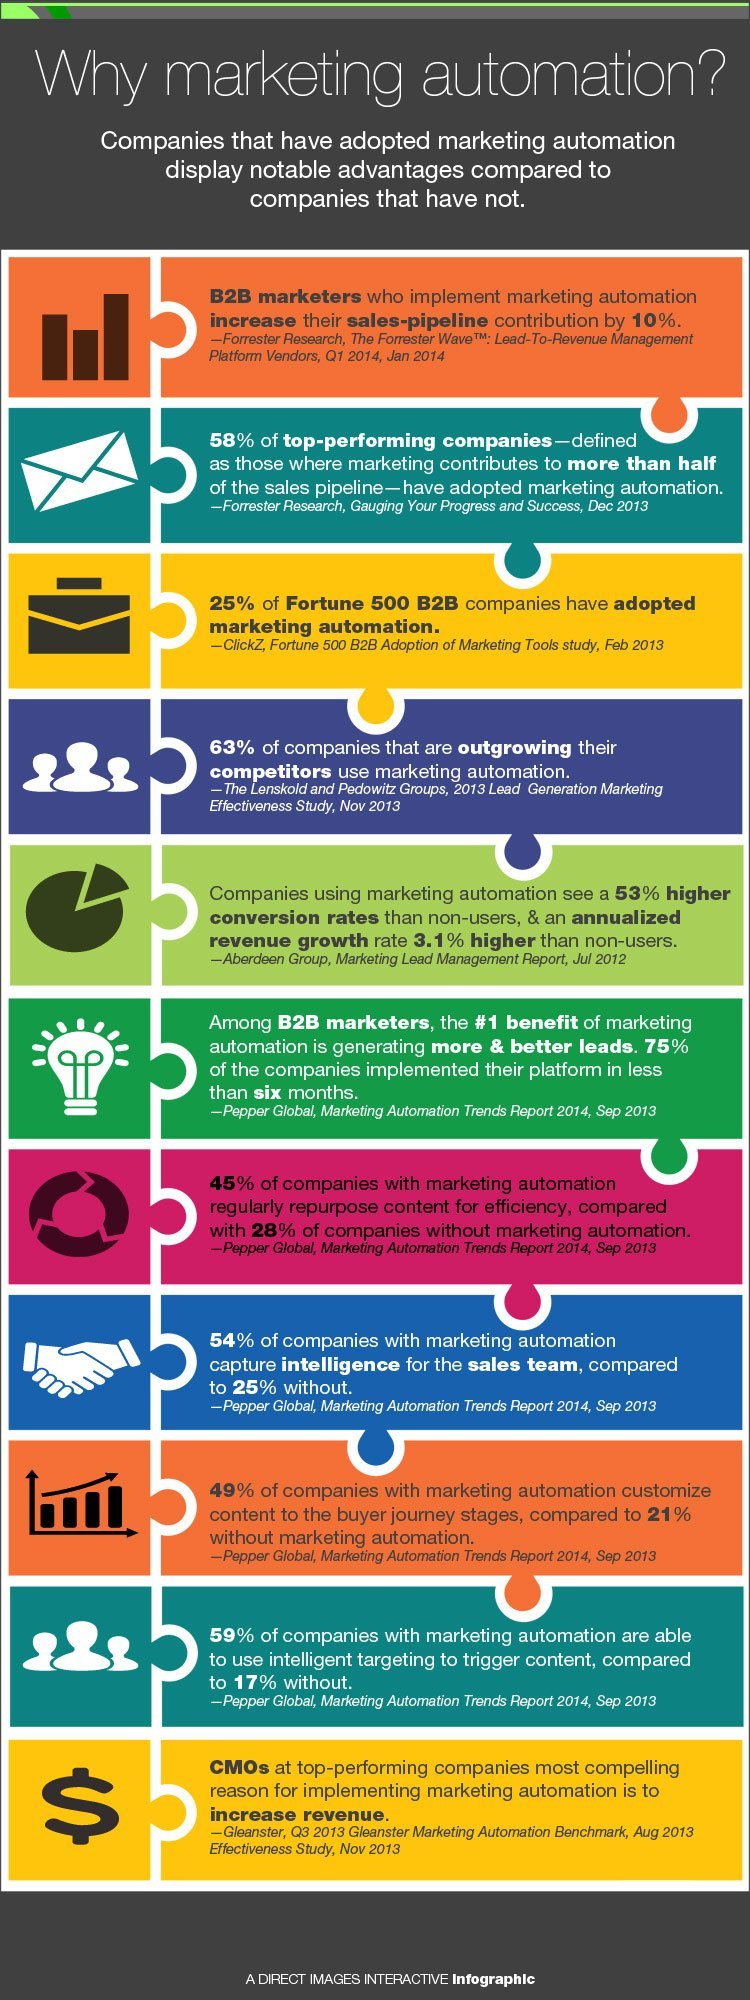 marketing-automation_infographic_750x2000.jpg